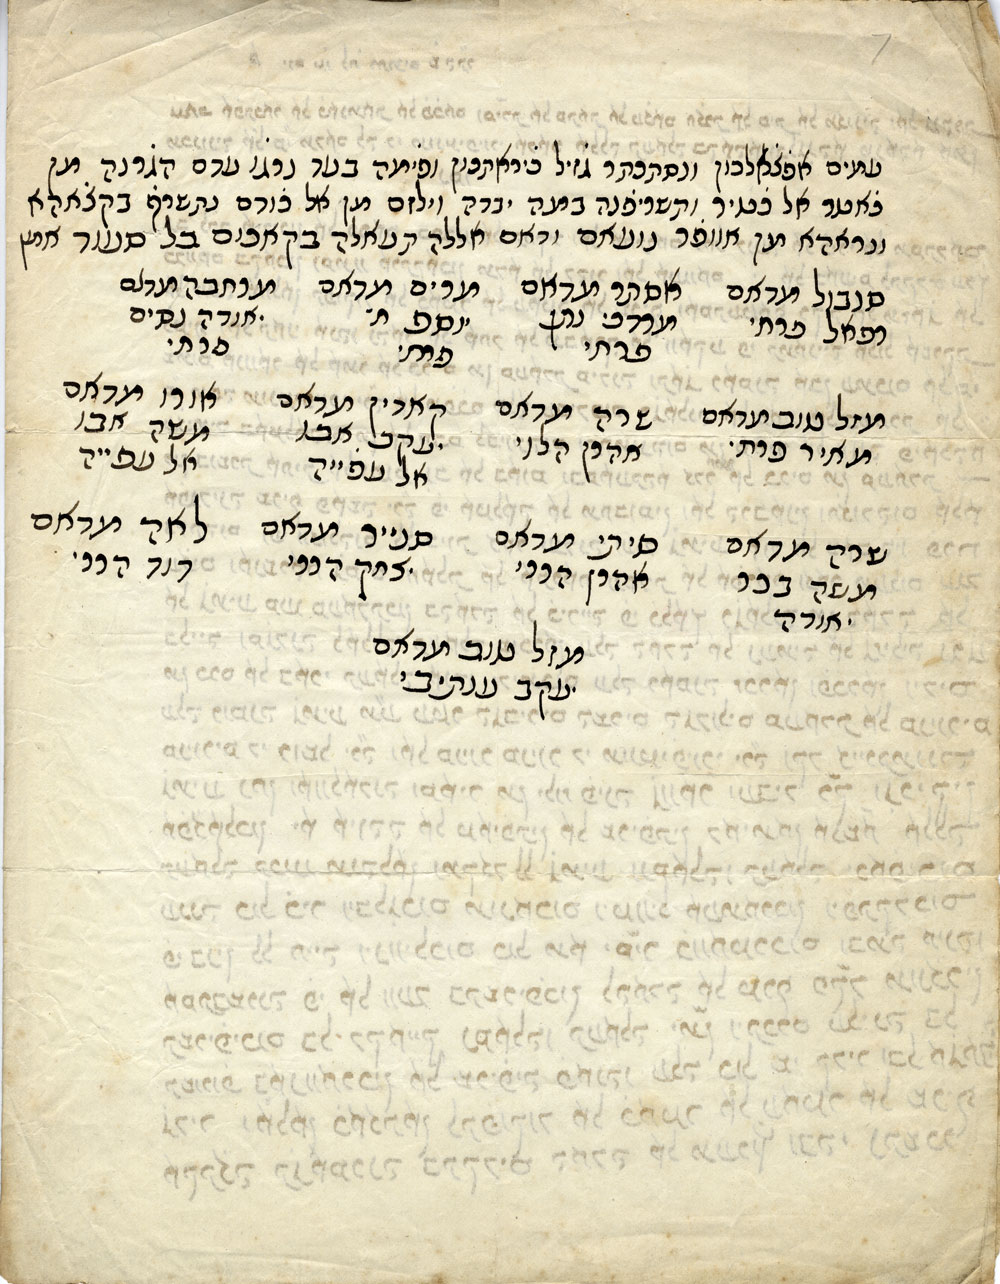 Signatures of the women from the Damascus Jewish community at the end of their letter to Lady Judith Montefiore